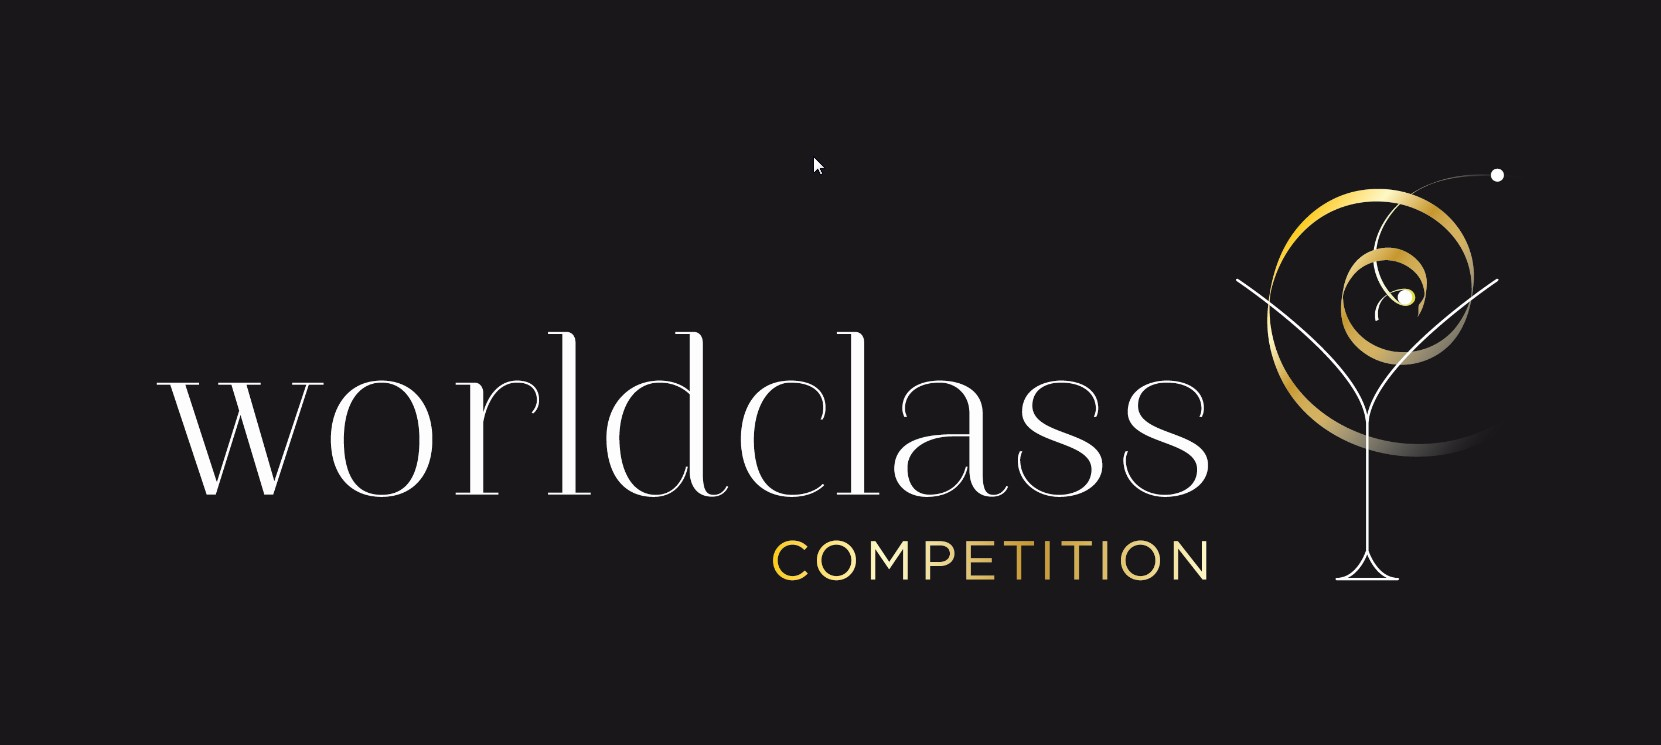 Wordclass Competition